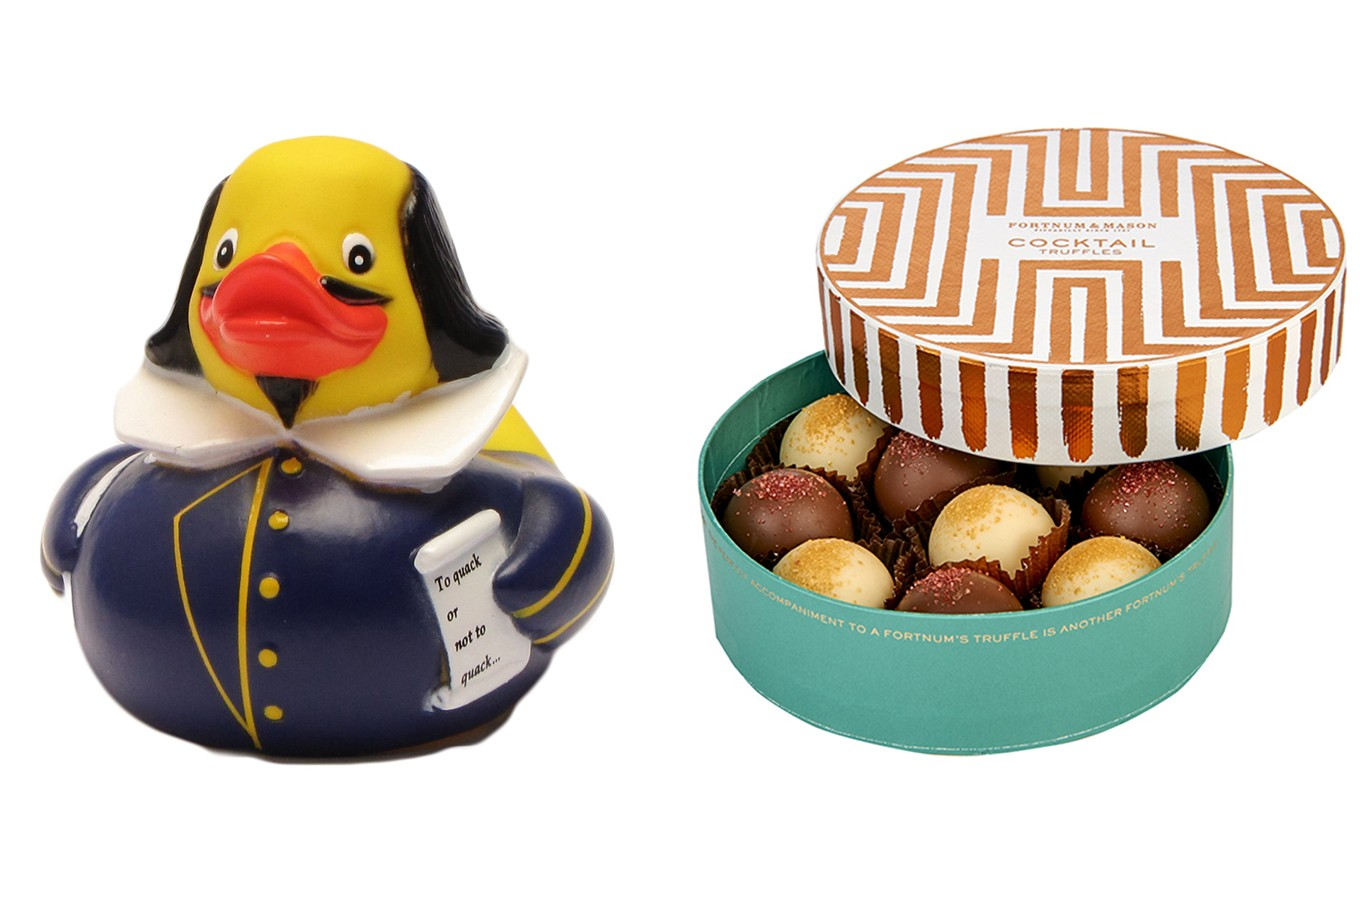 UNITED KINGDOM- Buy: The two things I most love about my country are its people's sense of humor and of our somehow managing to produce the world's greatest writer in Will Shakespeare. My Shakespeare rubber duck combines these two as the perfect gift. You may have to go to Stratford to find the Shakespeare version but rubber ducks more generally have taken over the UK and can be found lurking in most bathrooms. <br><br> If you're looking for a touch of luxury, where do I start? How about some Fortnum and Mason chocolate truffles or an Emma Bridgewater teapot for the British afternoon staple? (Paul Smith, Country Director, British Council)